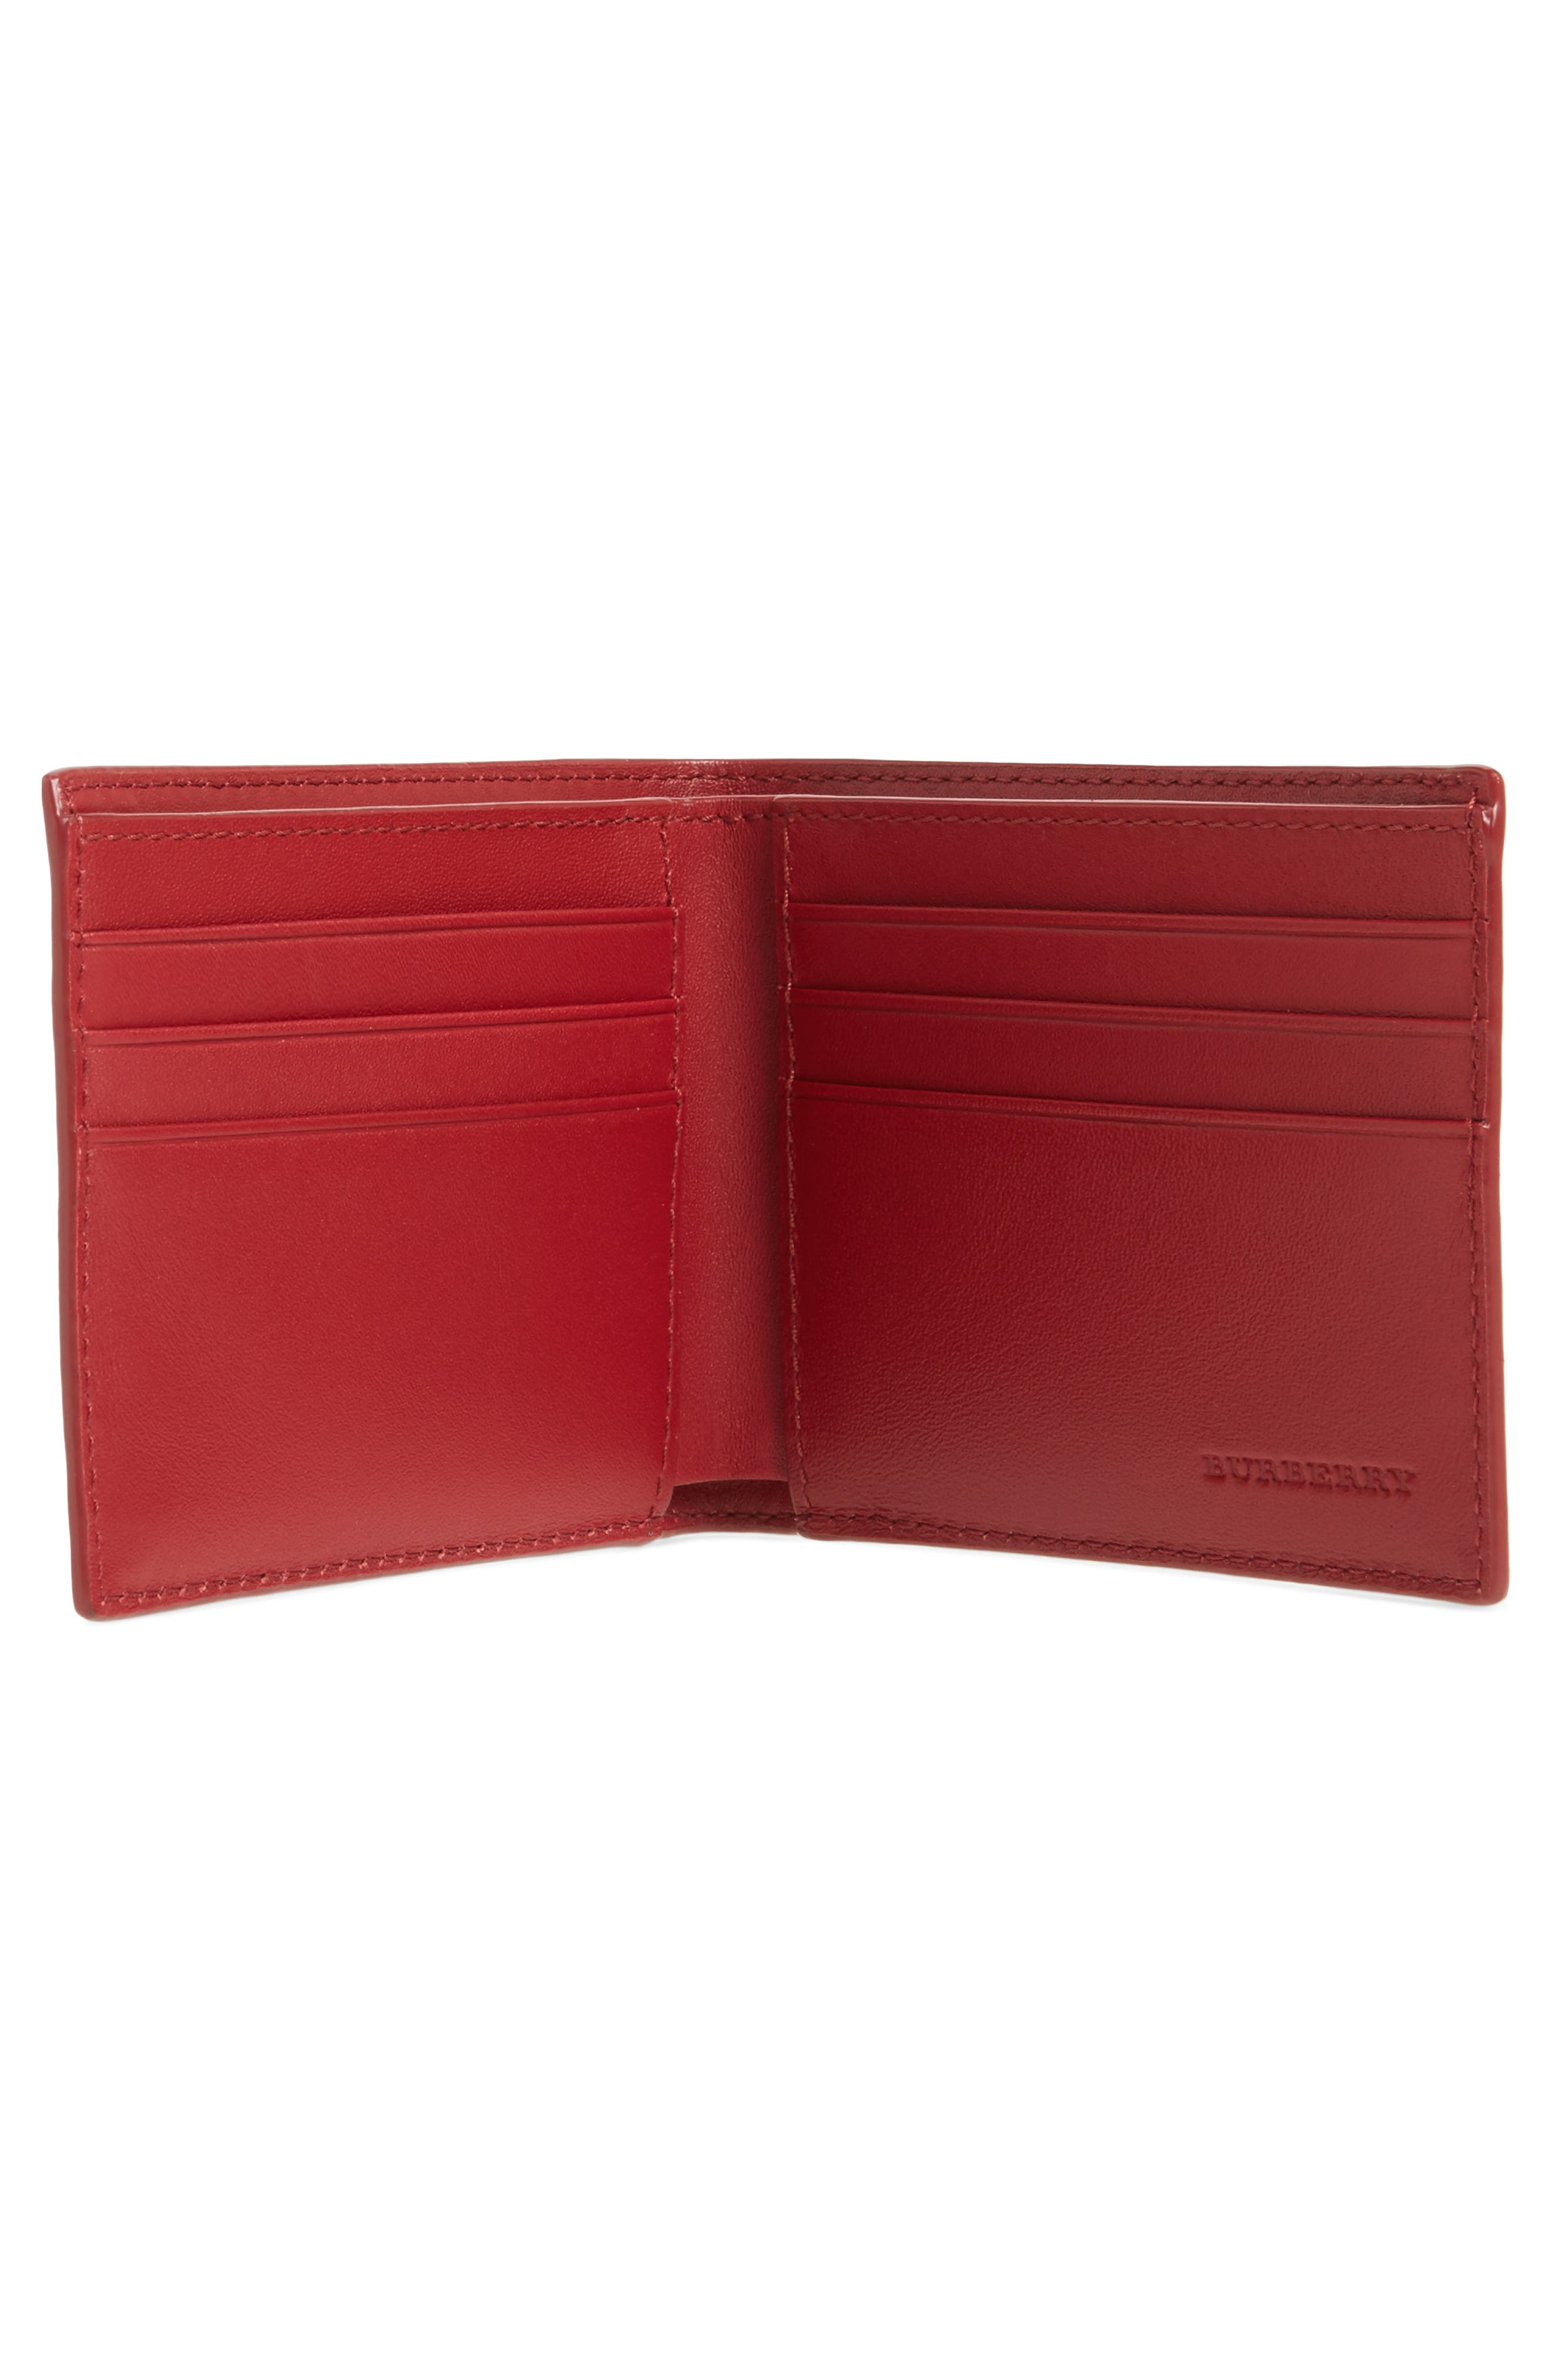 Check Faux Leather Wallet,                             Alternate thumbnail 2, color,                             207